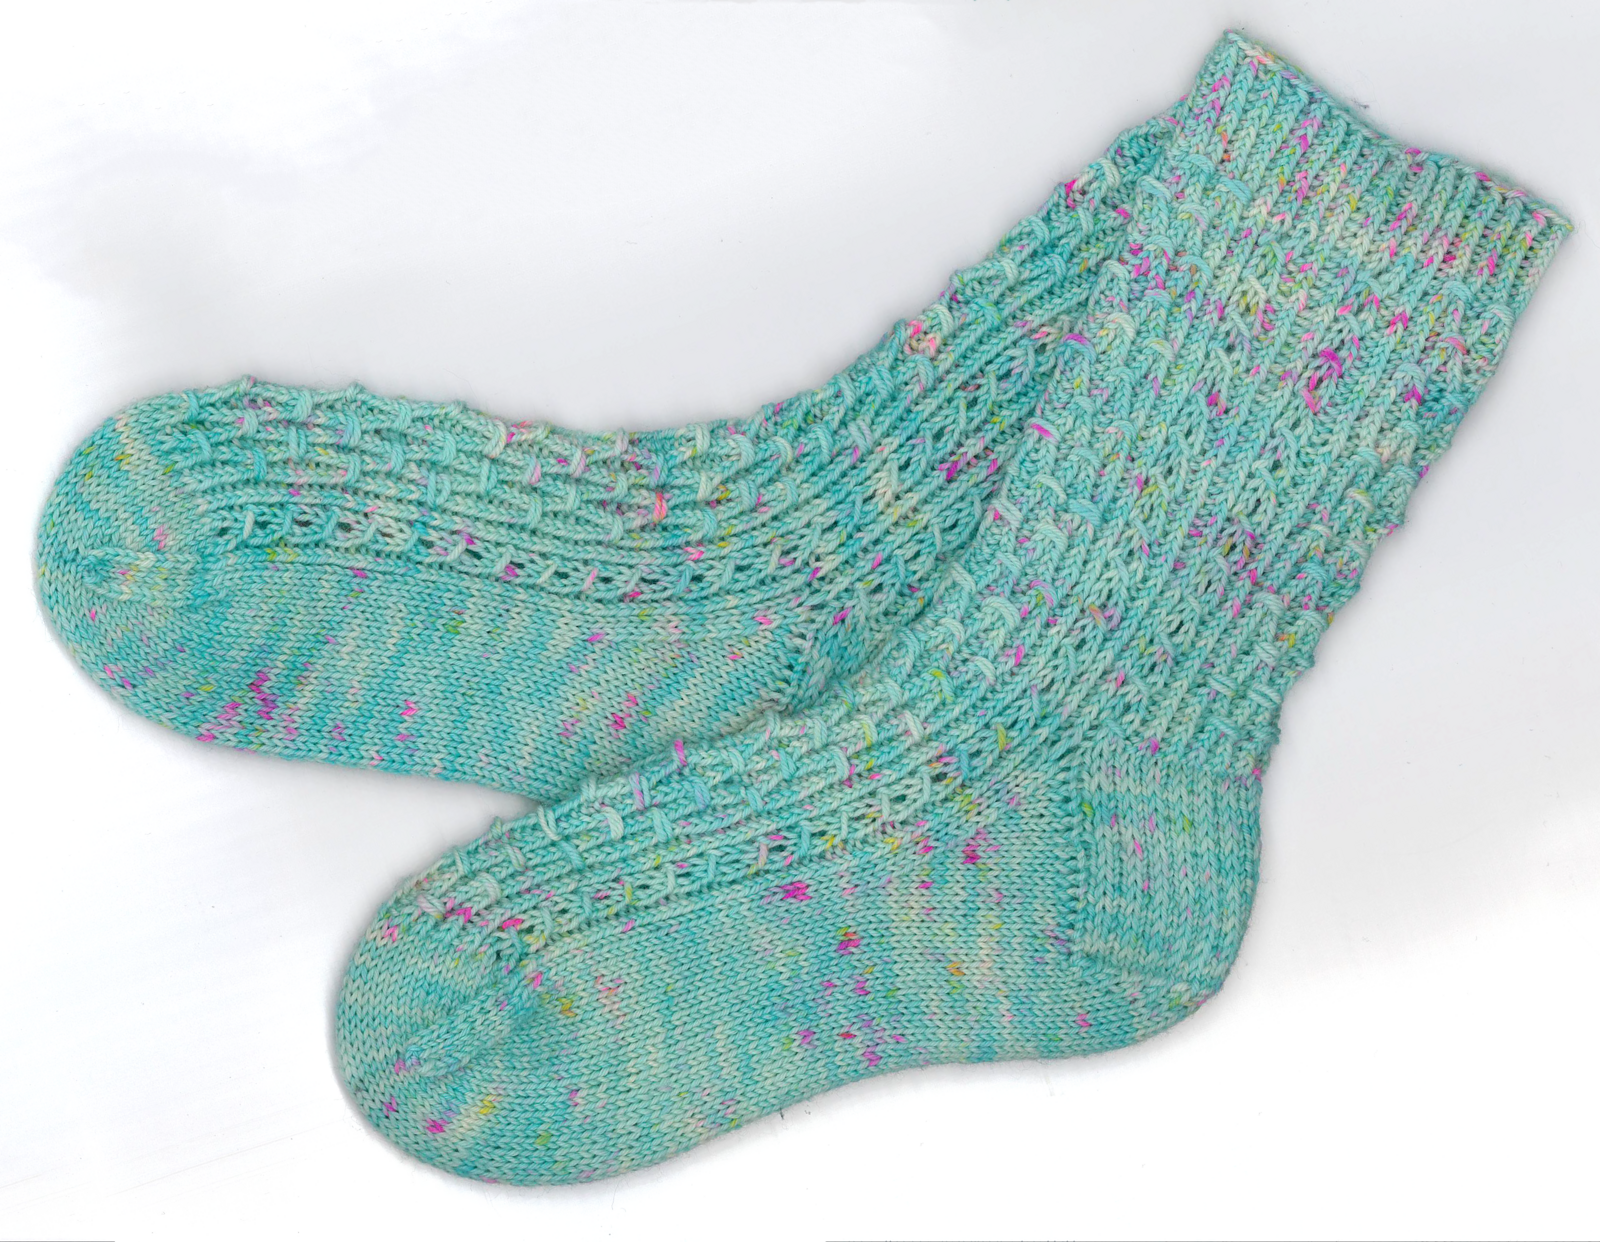 Turquoise knitted sock with smocking and mock cables